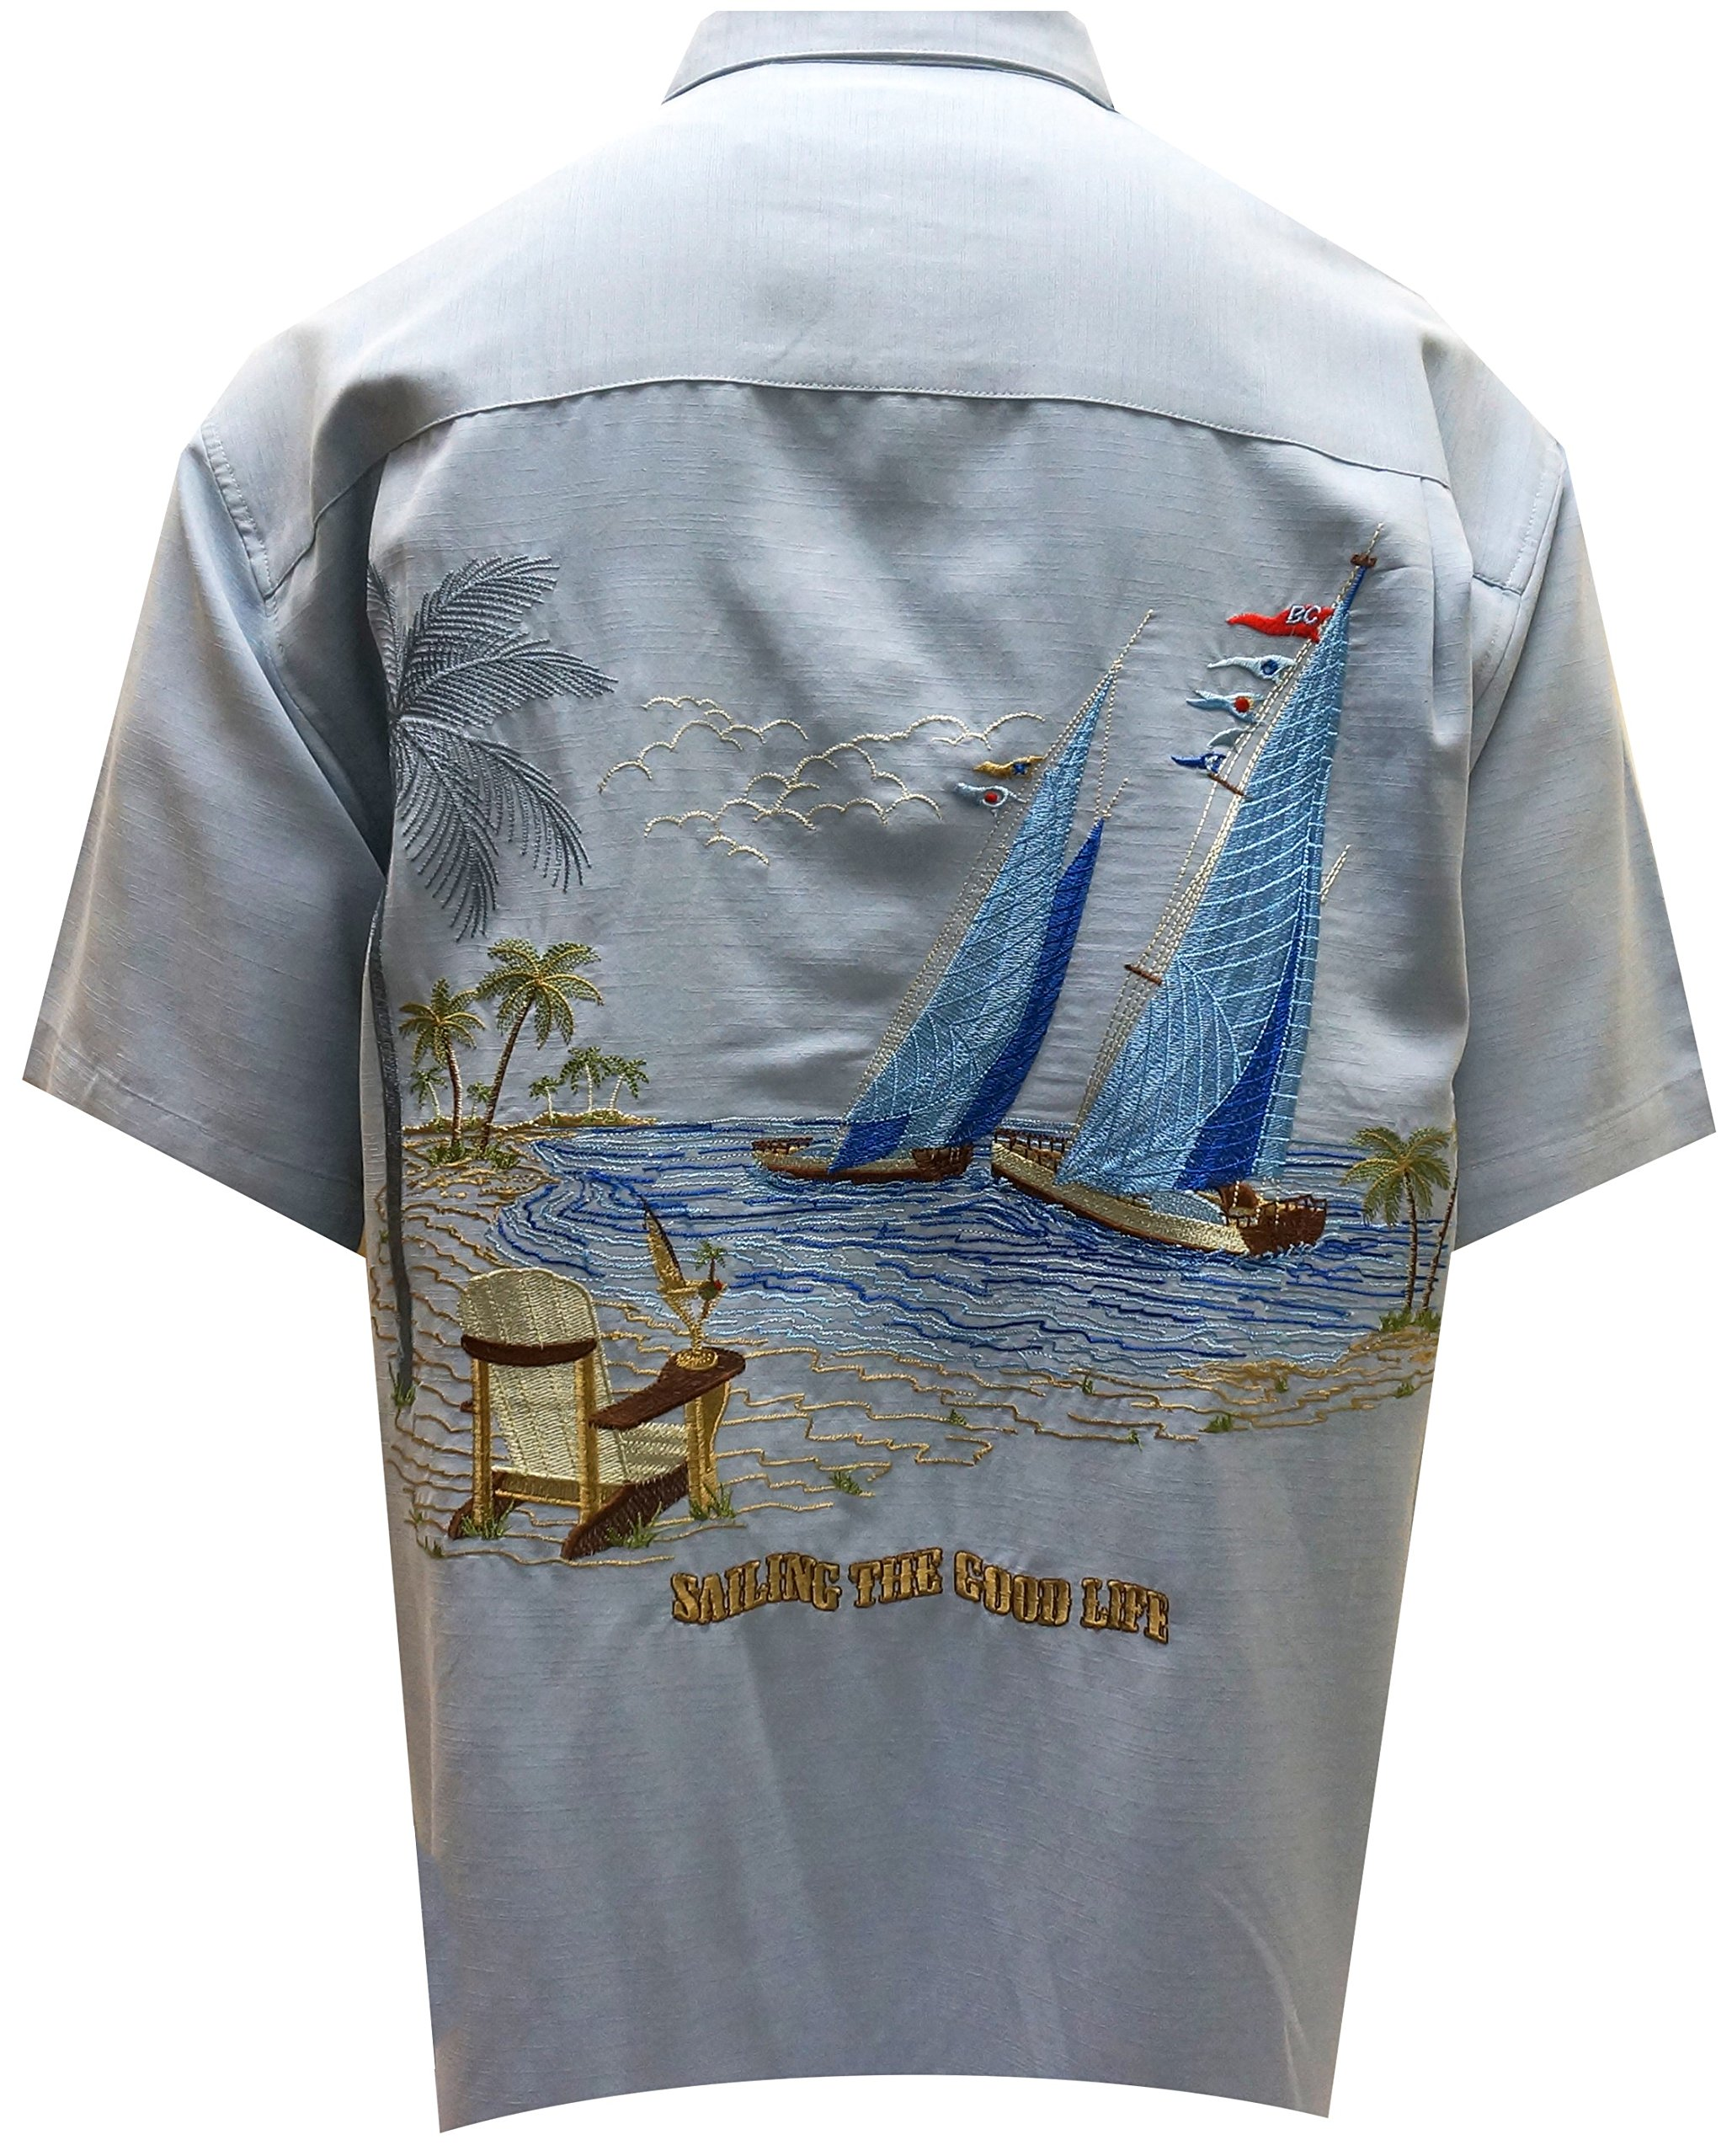 Bamboo Cay Men's Sailing the Good Life, Button Front Embroidered Camp Shirt (2XL, Blue)